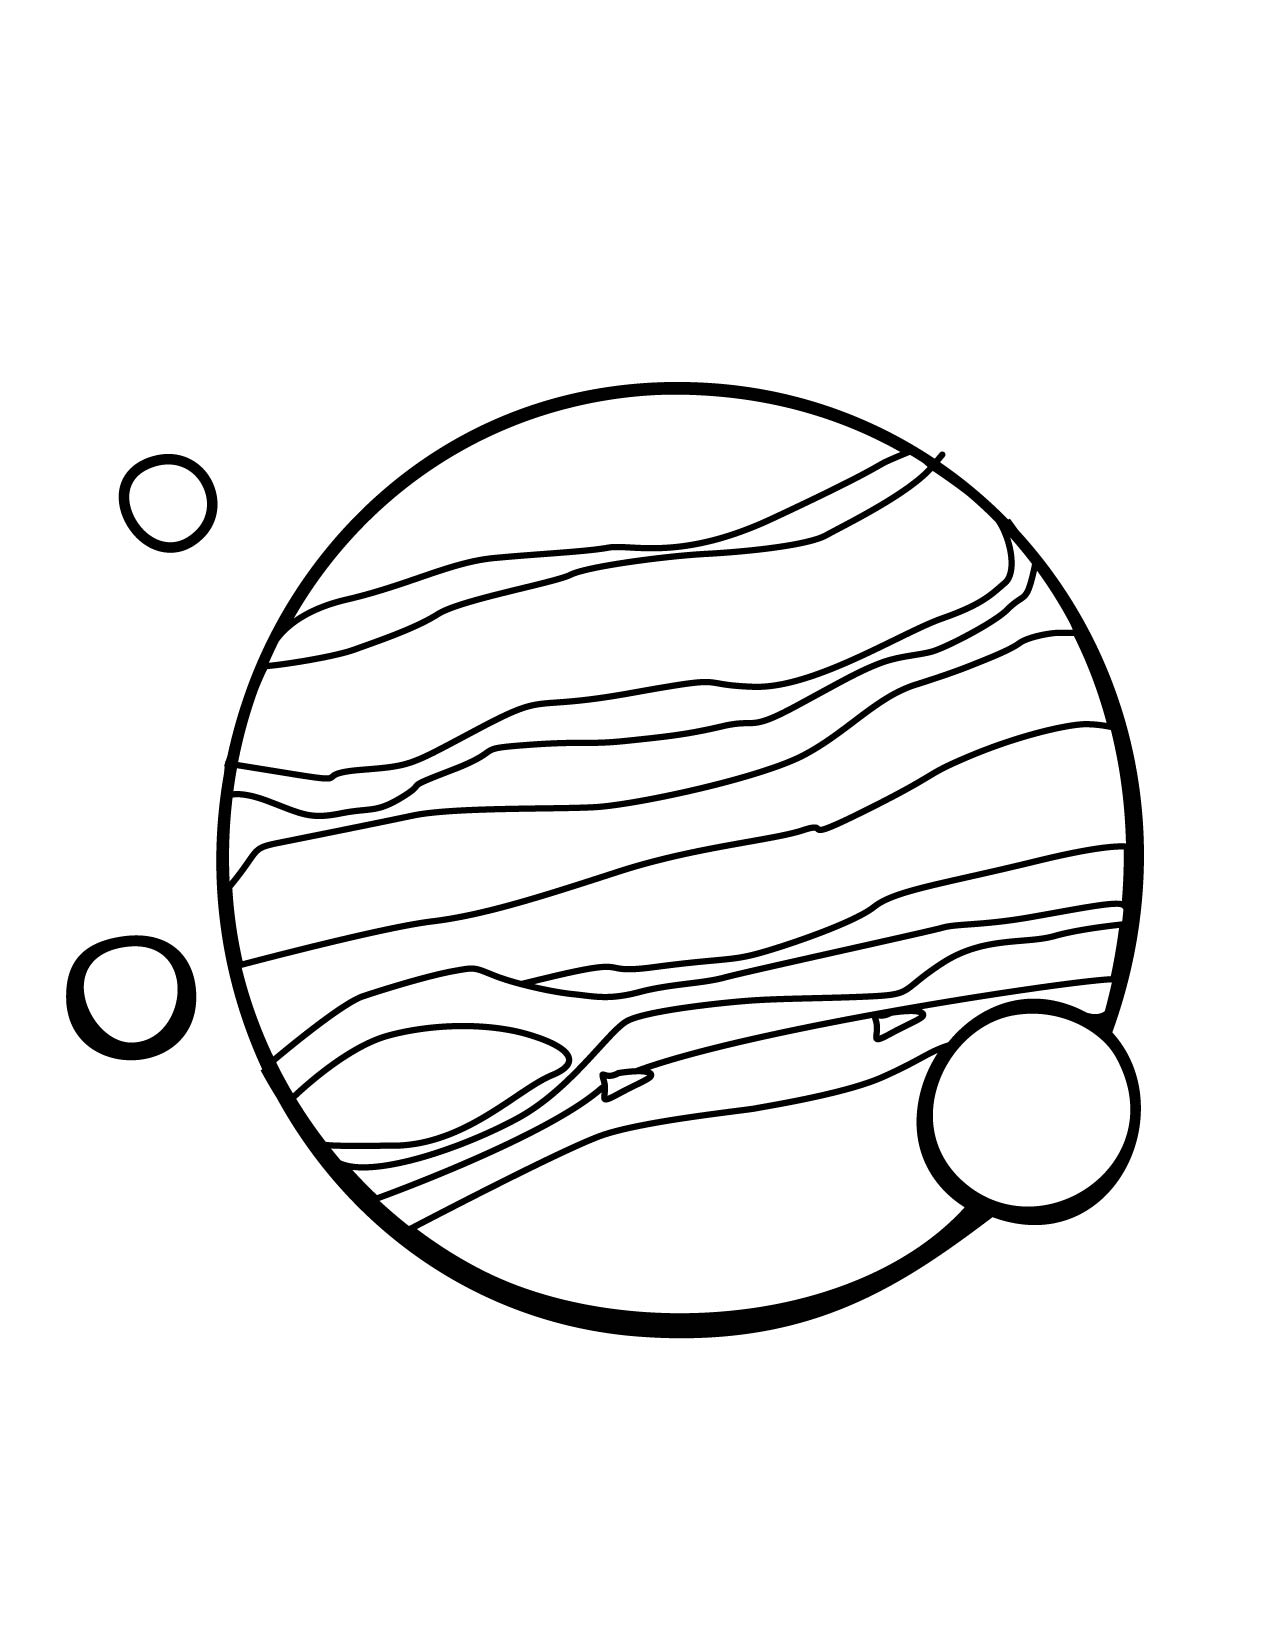 Jupiter Planet Line Drawings